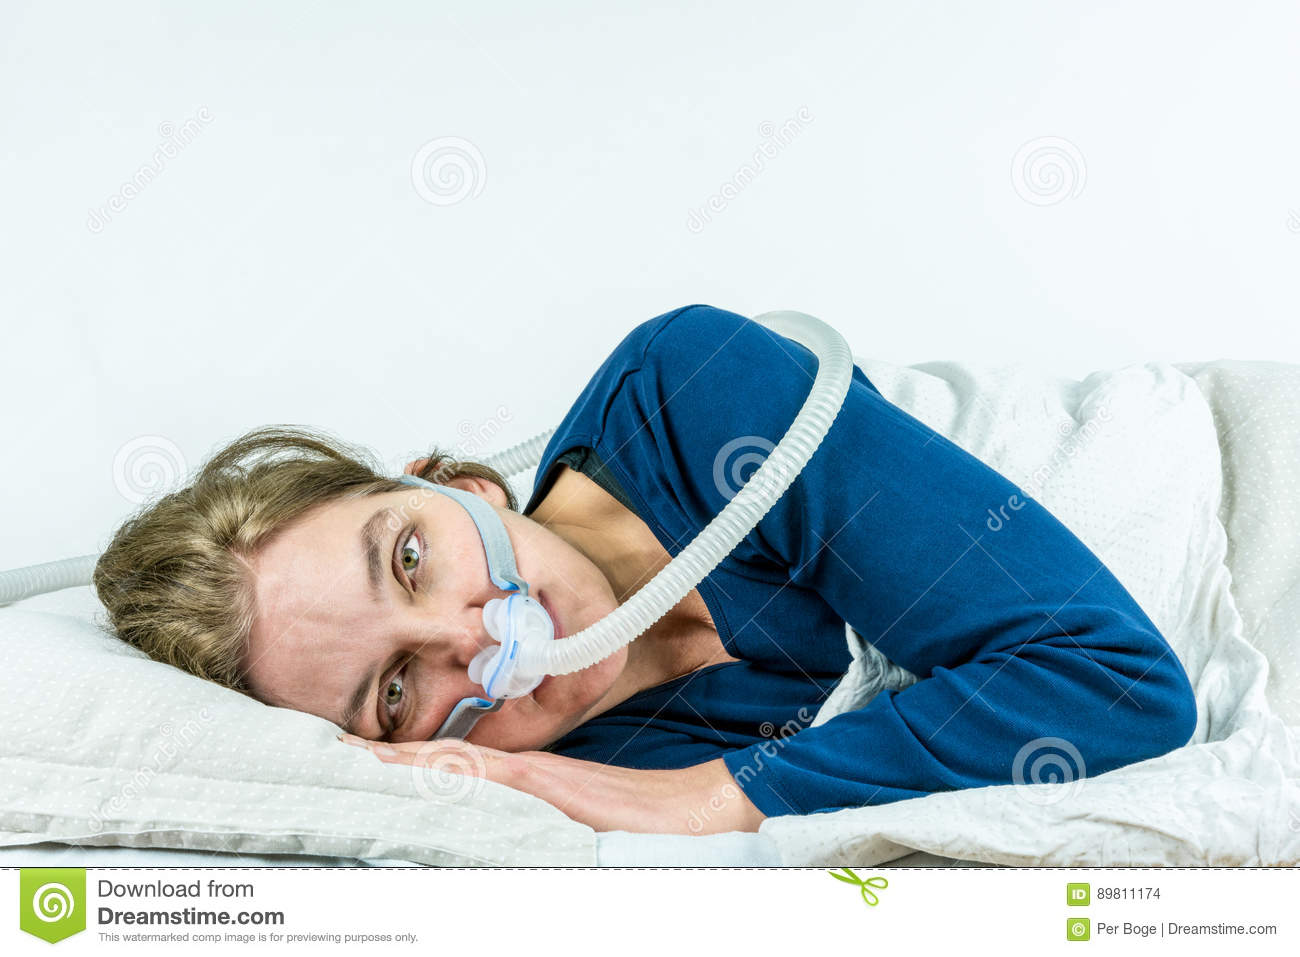 CPAP, sleep apnea treatment.Woman laying on her side with eyes open